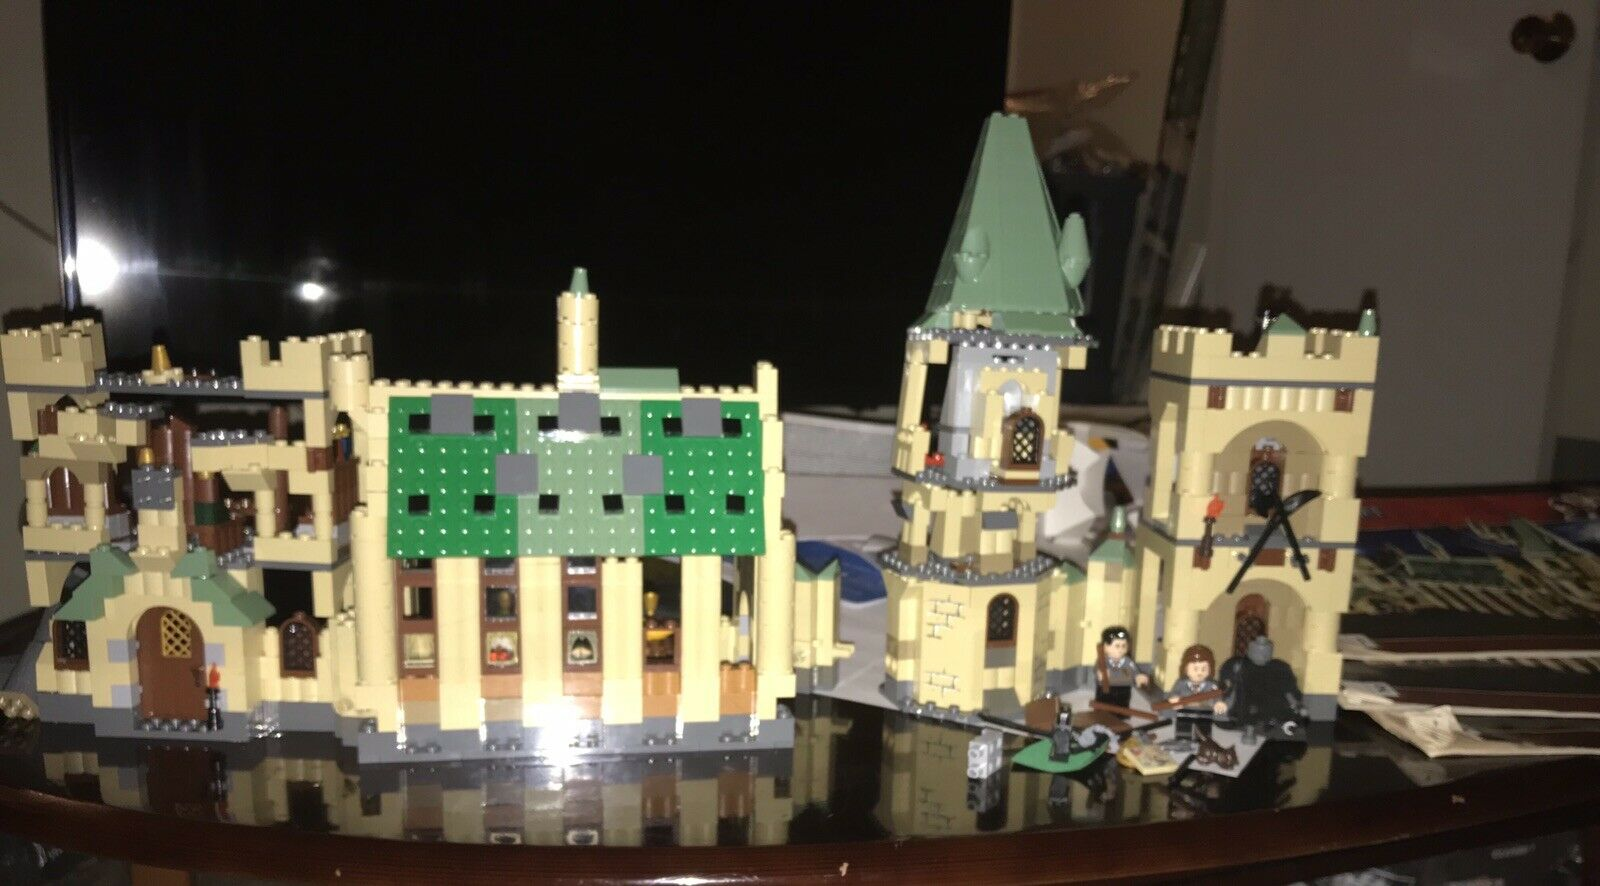 LEGO Harry Potter Hogwarts Castle #4842 Nearly Complete! (DISCONTINUED/RETIRED)